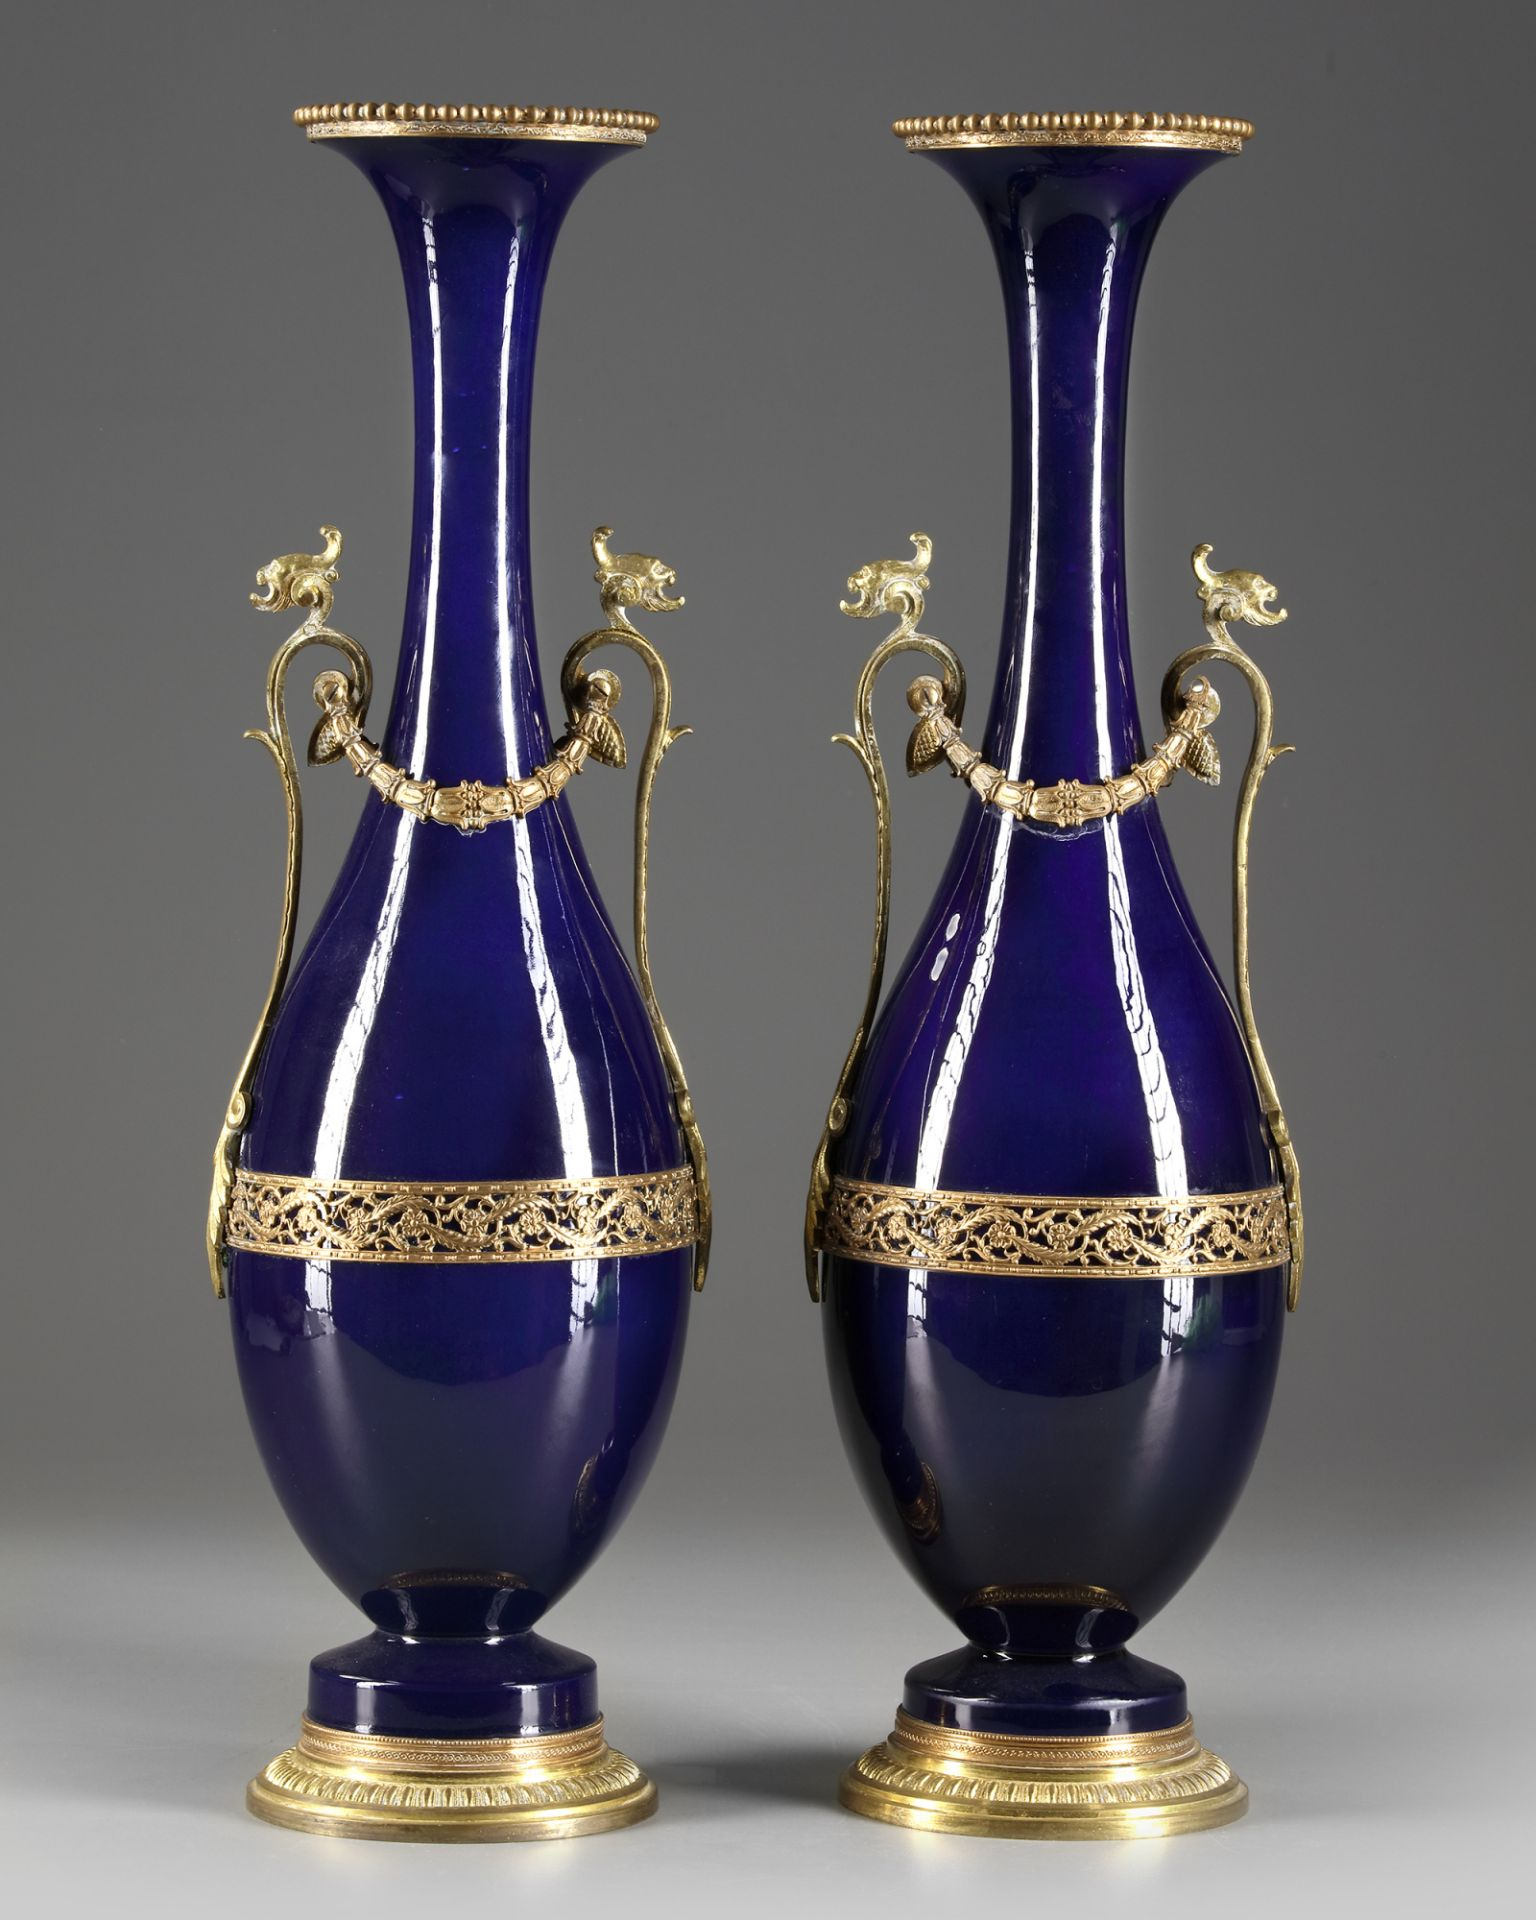 A PAIR OF FRENCH BLUE PORCELAIN VASES, CIRCA 1900